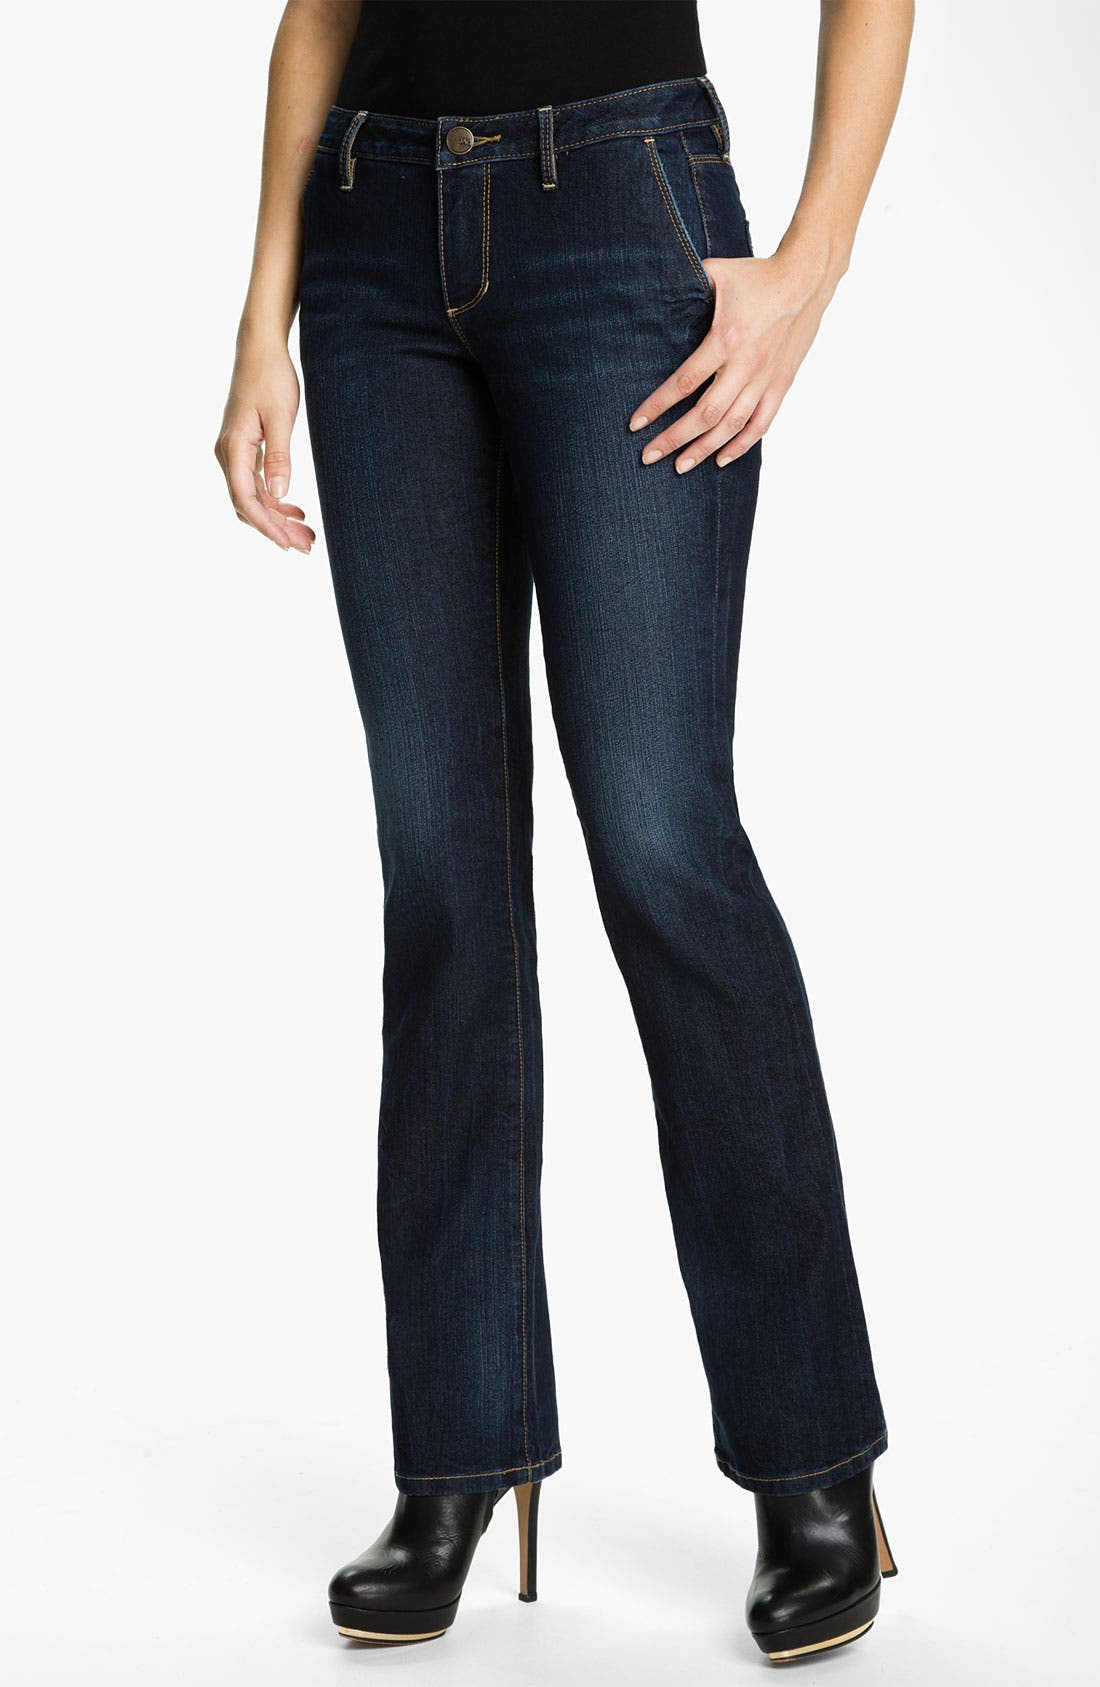 Alternate Image 1 Selected - Jag Jeans 'Virginia' Bootcut Stretch Jeans (Roswell) (Petite)